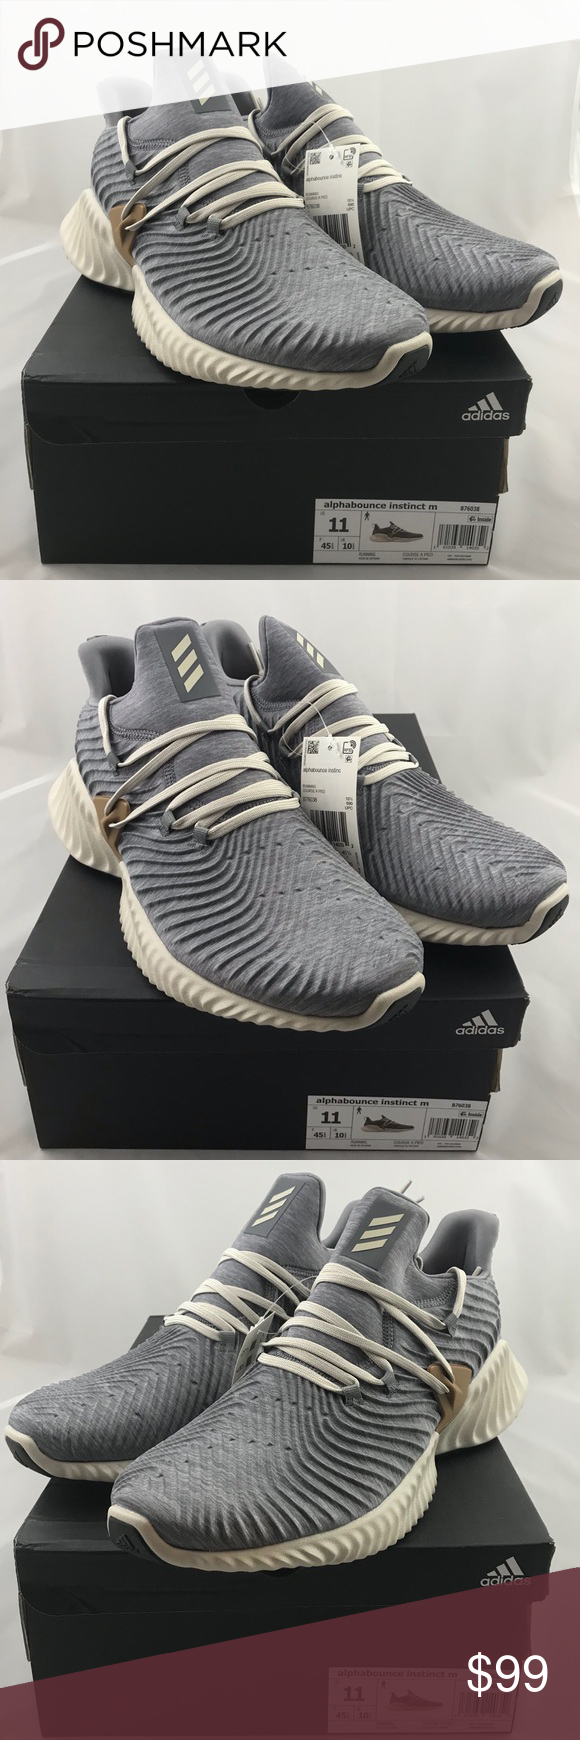 376c7f4165fd1 Adidas AlphaBounce Instinct M Core Size 11 B76038 NEW Adidas AlphaBounce  Instinct M SZ 11 Core Heather Clear Brown Raw B76038 adidas Shoes Sneakers